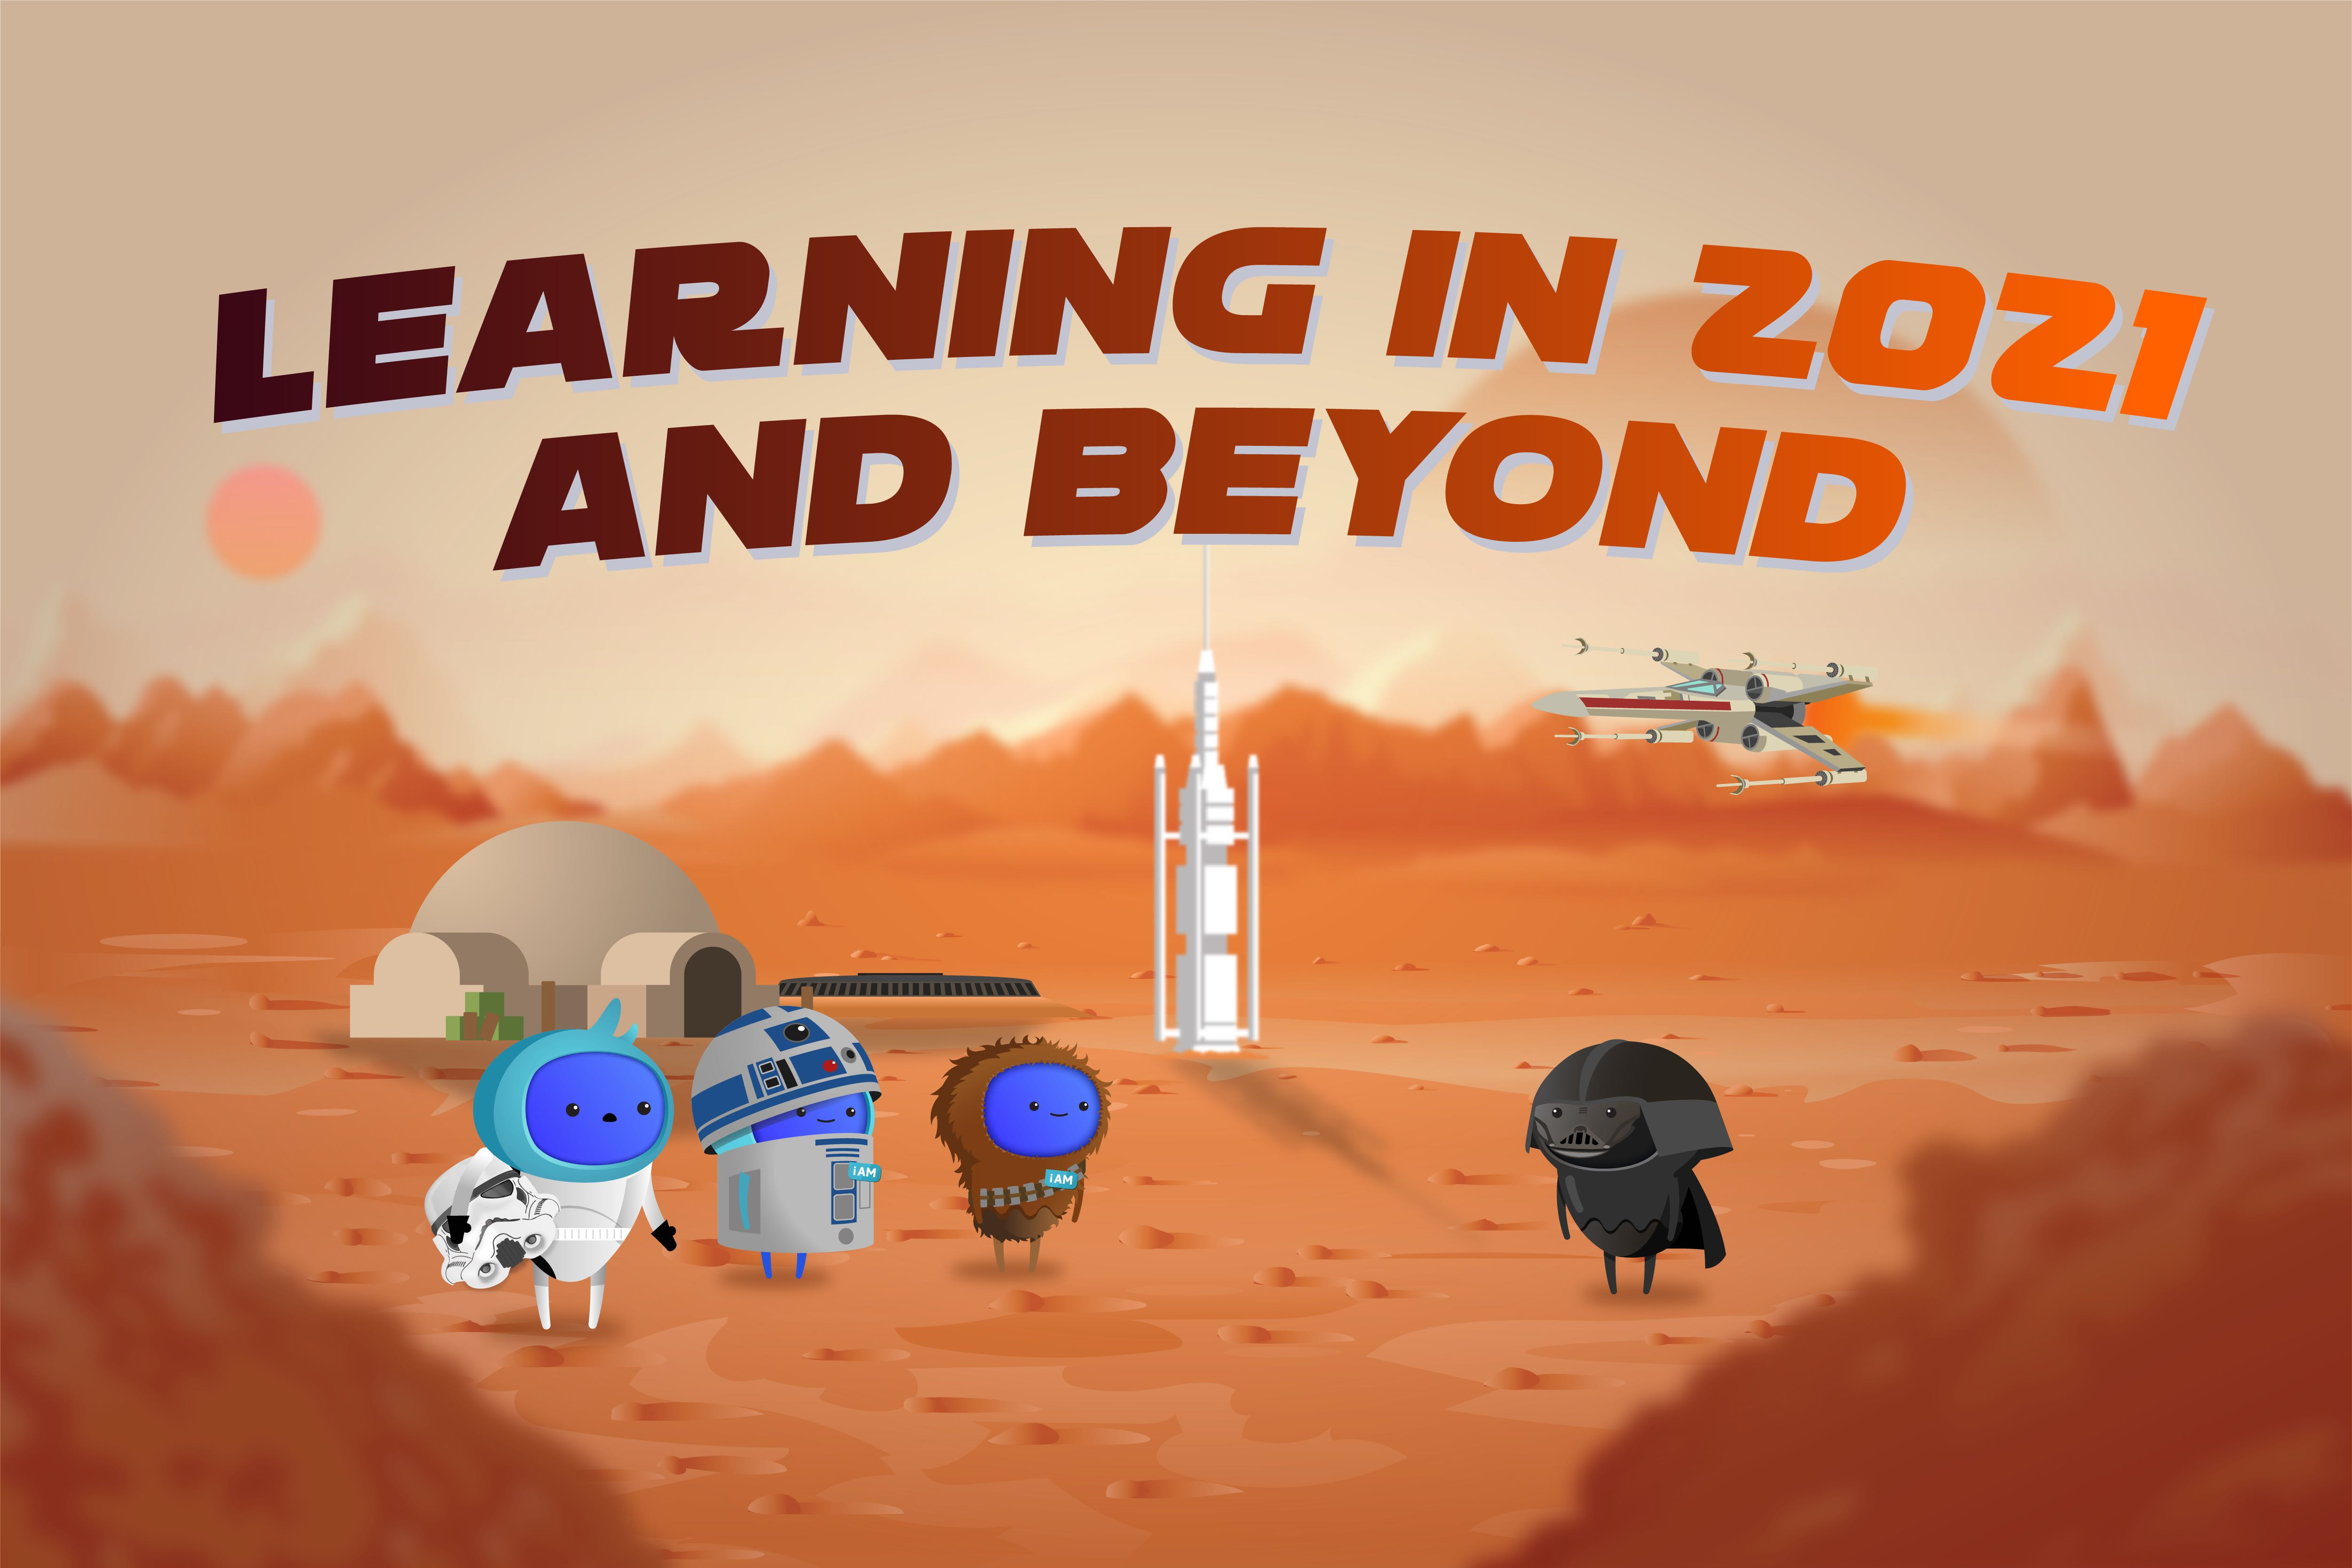 Learning in 2021 and beyond